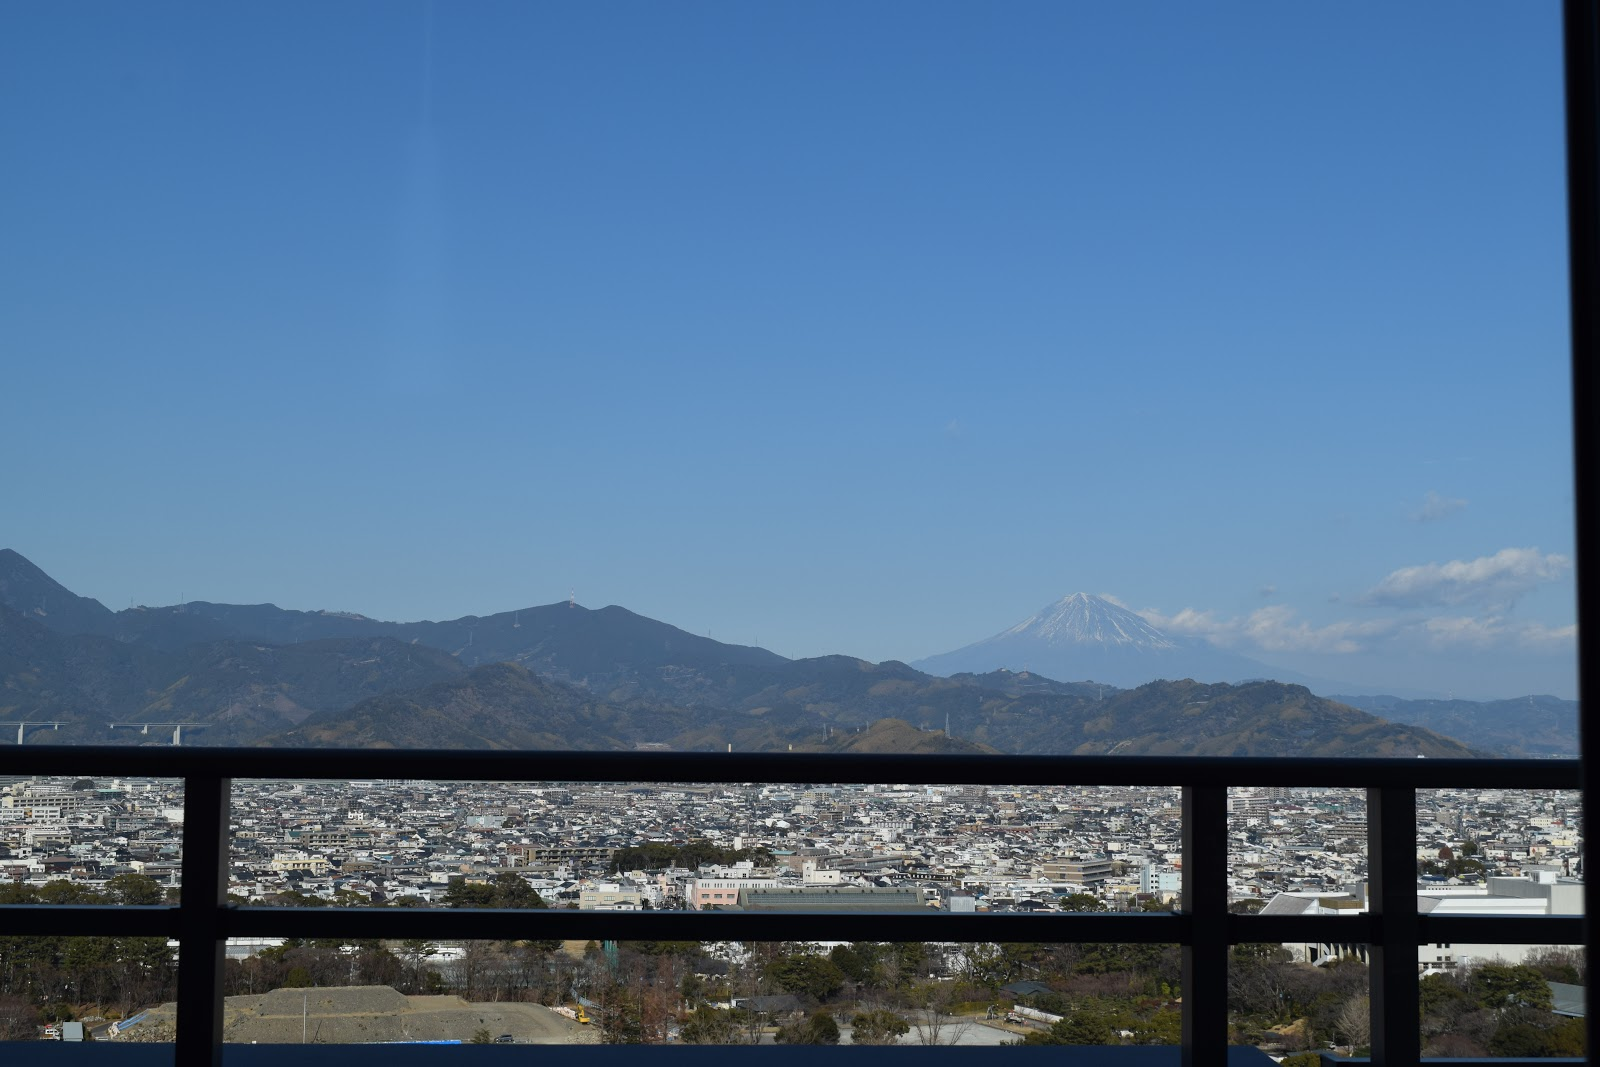 The view of Shizuoka city and Mt Fuji from my friend's apartment building